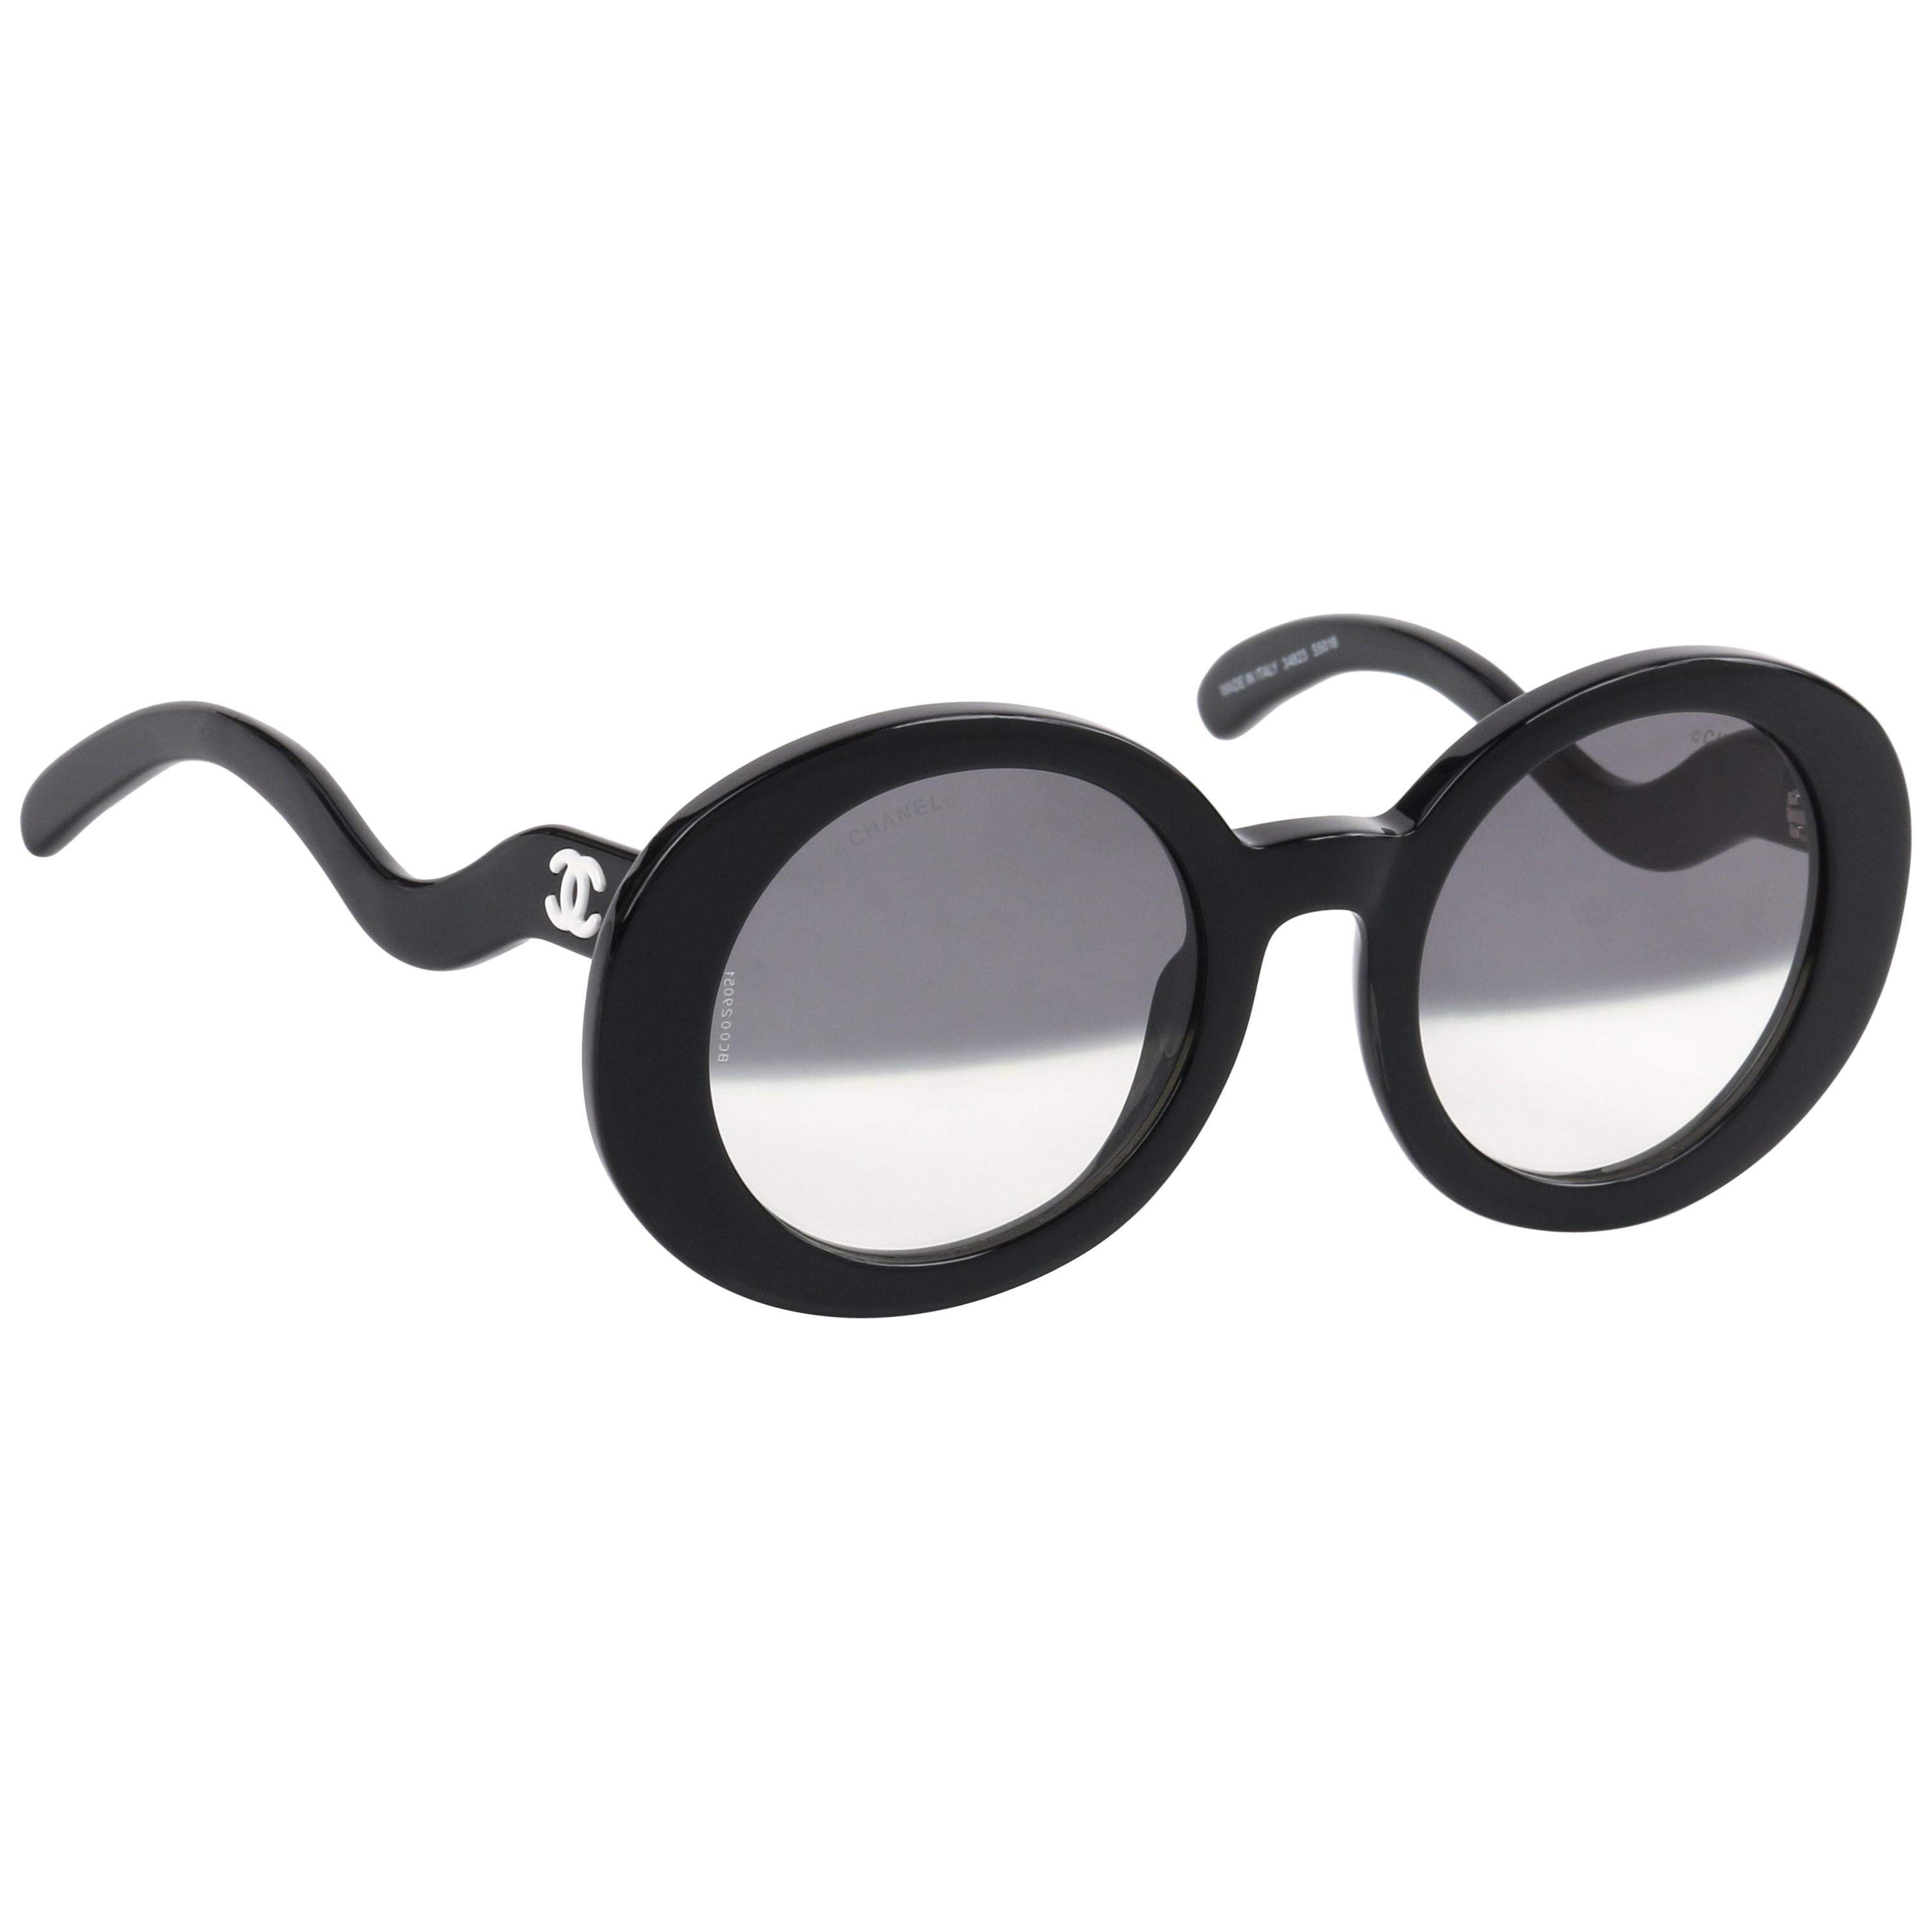 0d1658795 CHANEL S/S 2007 Black Round Half-Tint Sunglasses S5018 For Sale at 1stdibs